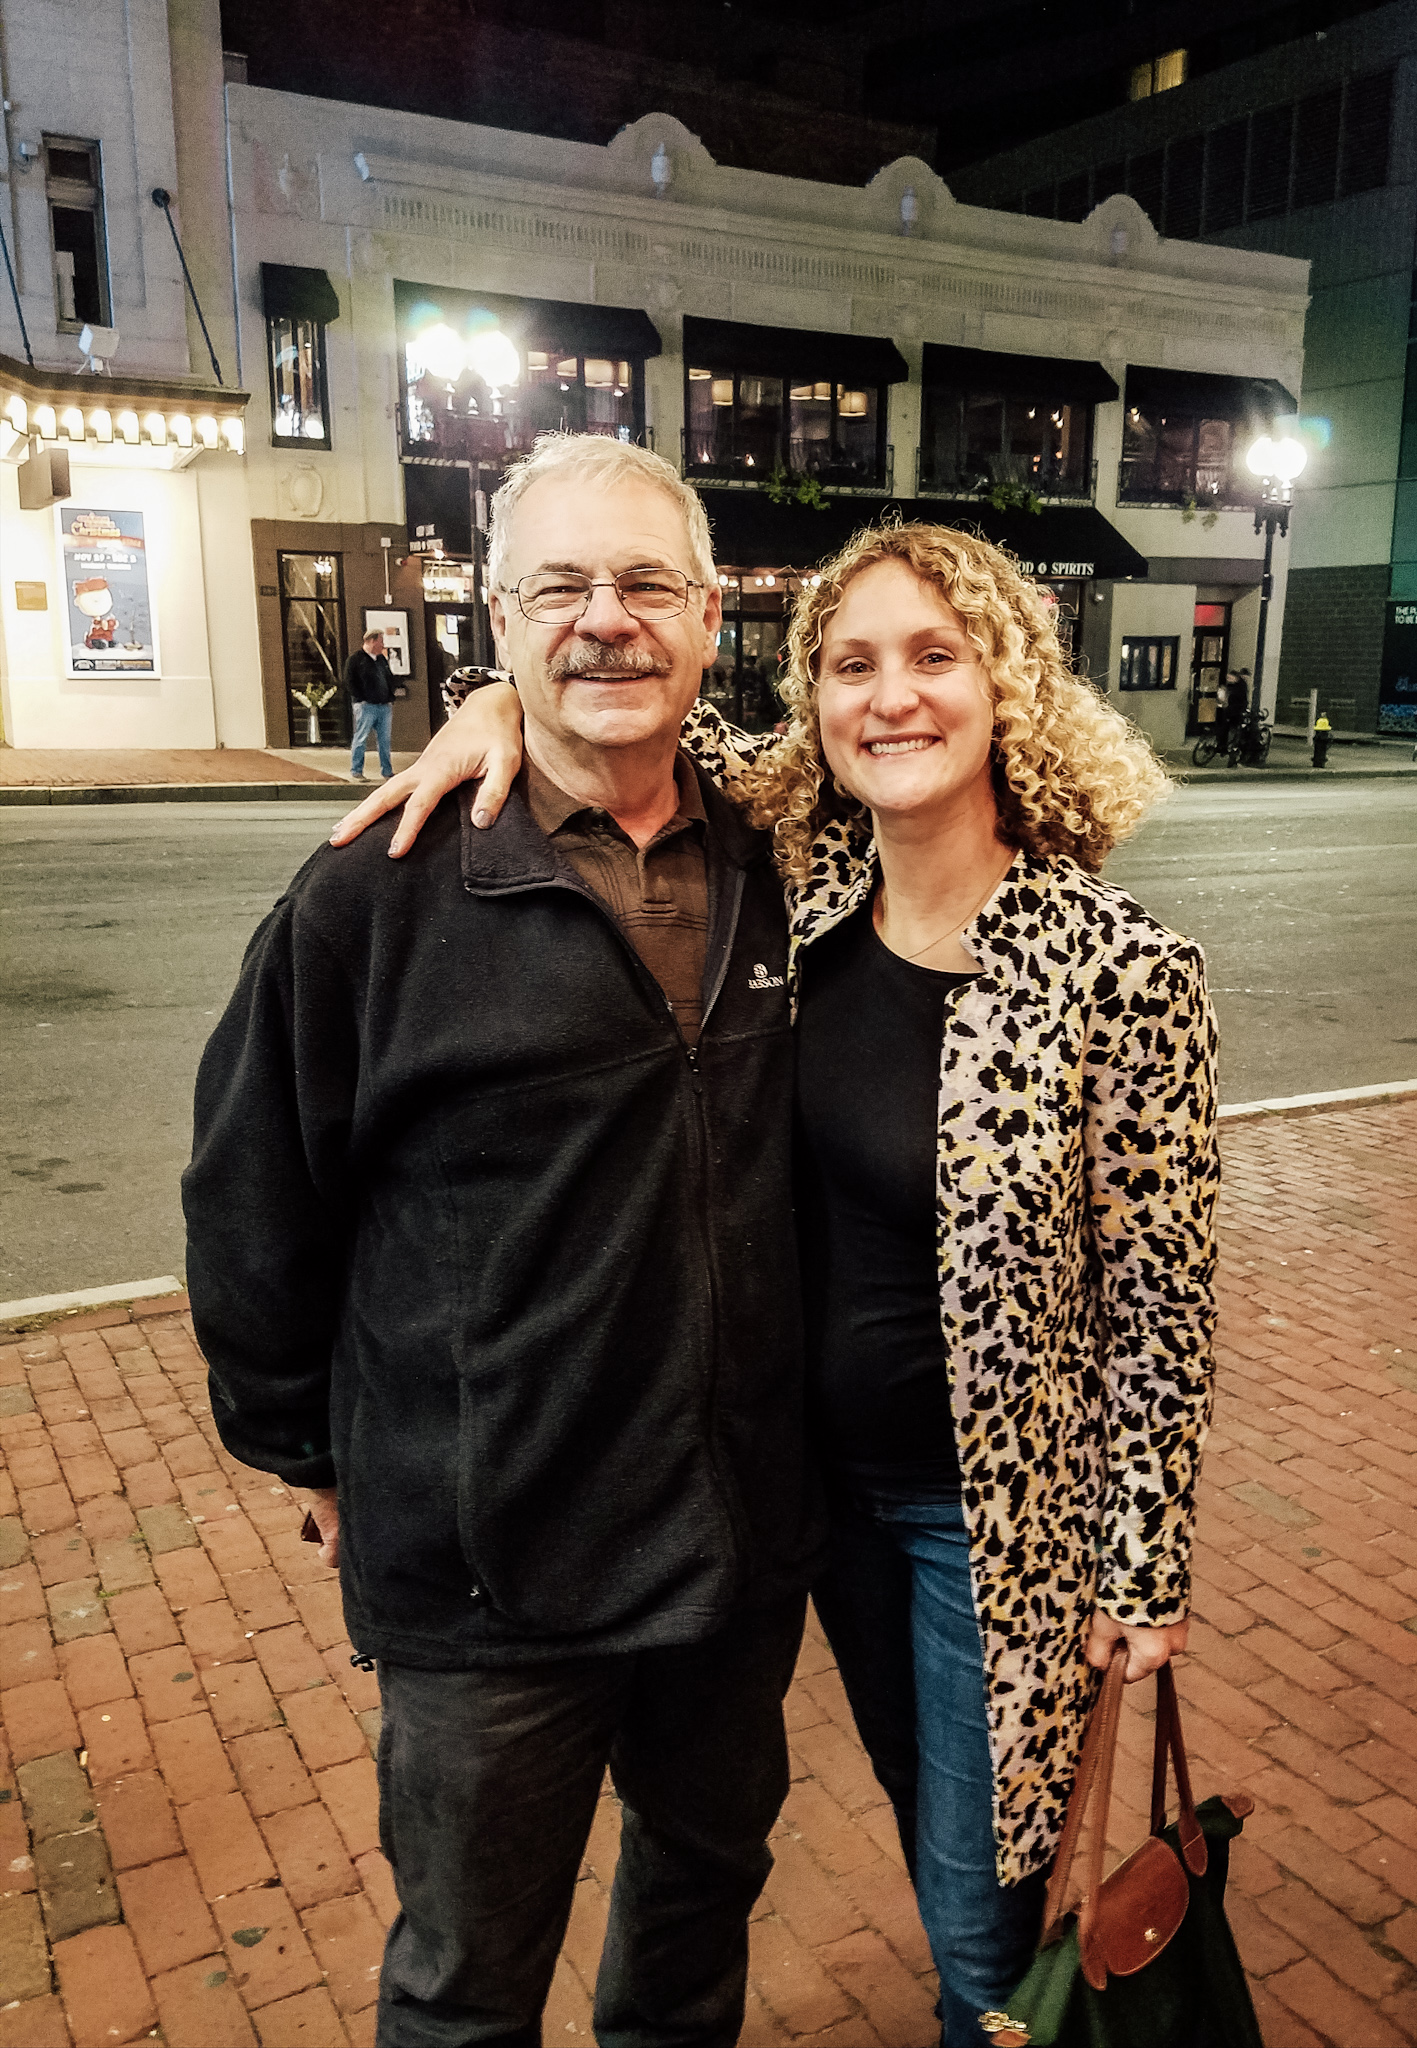 Me and my dad before the Gad Elmaleh show in Boston <3